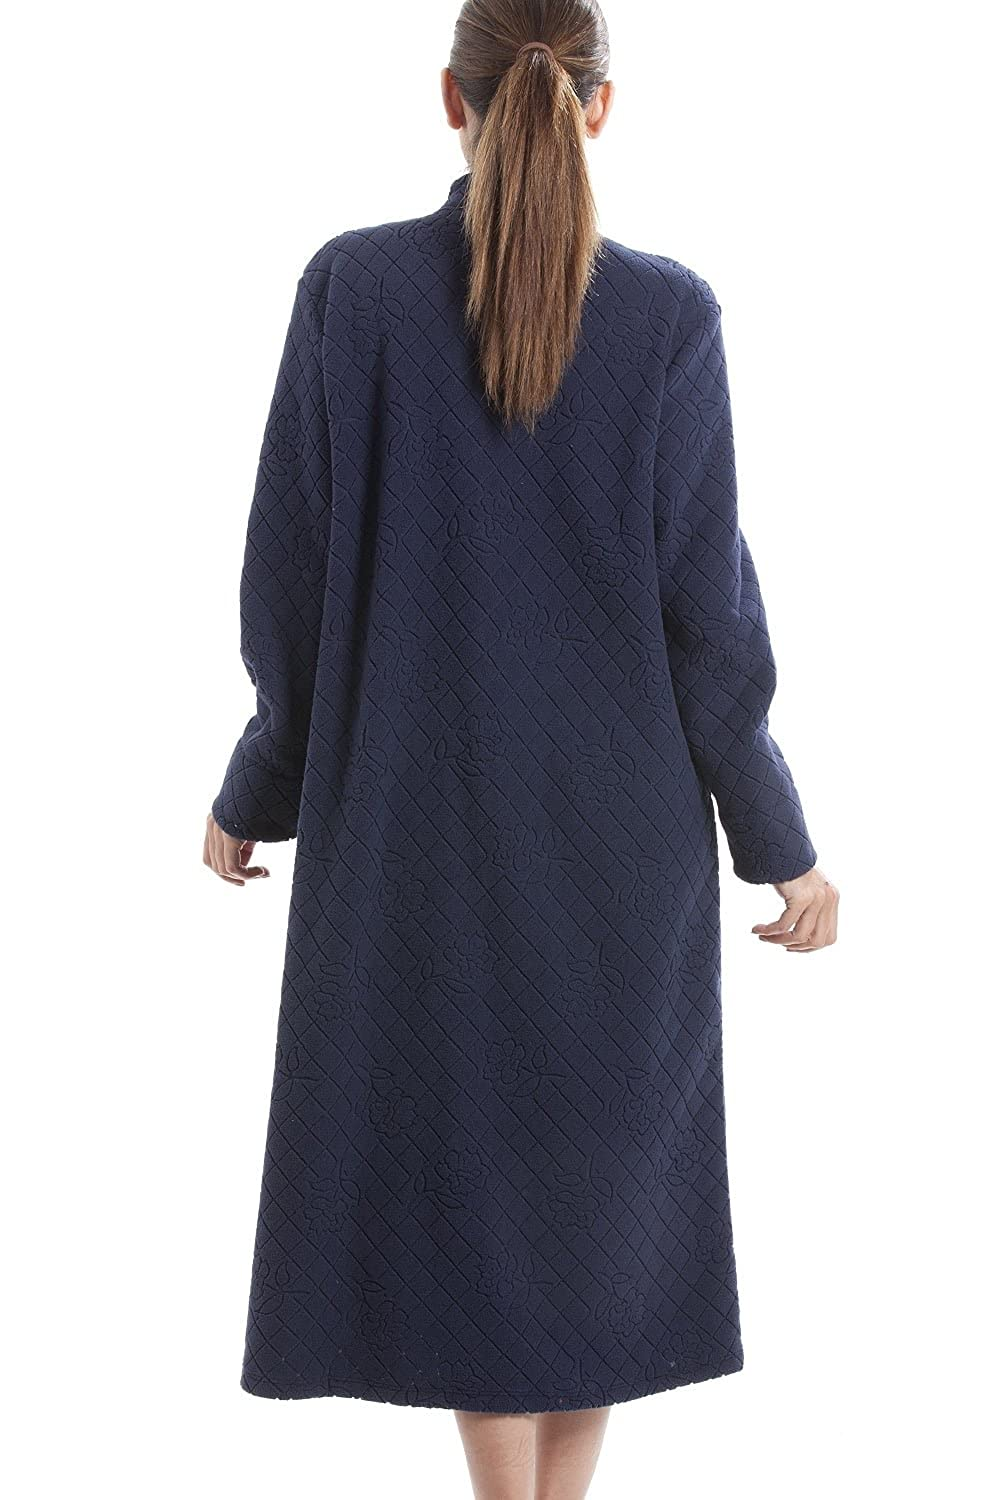 Camille Navy Soft Fleece Floral Full Length Button Up Housecoat at Amazon Womens Clothing store: